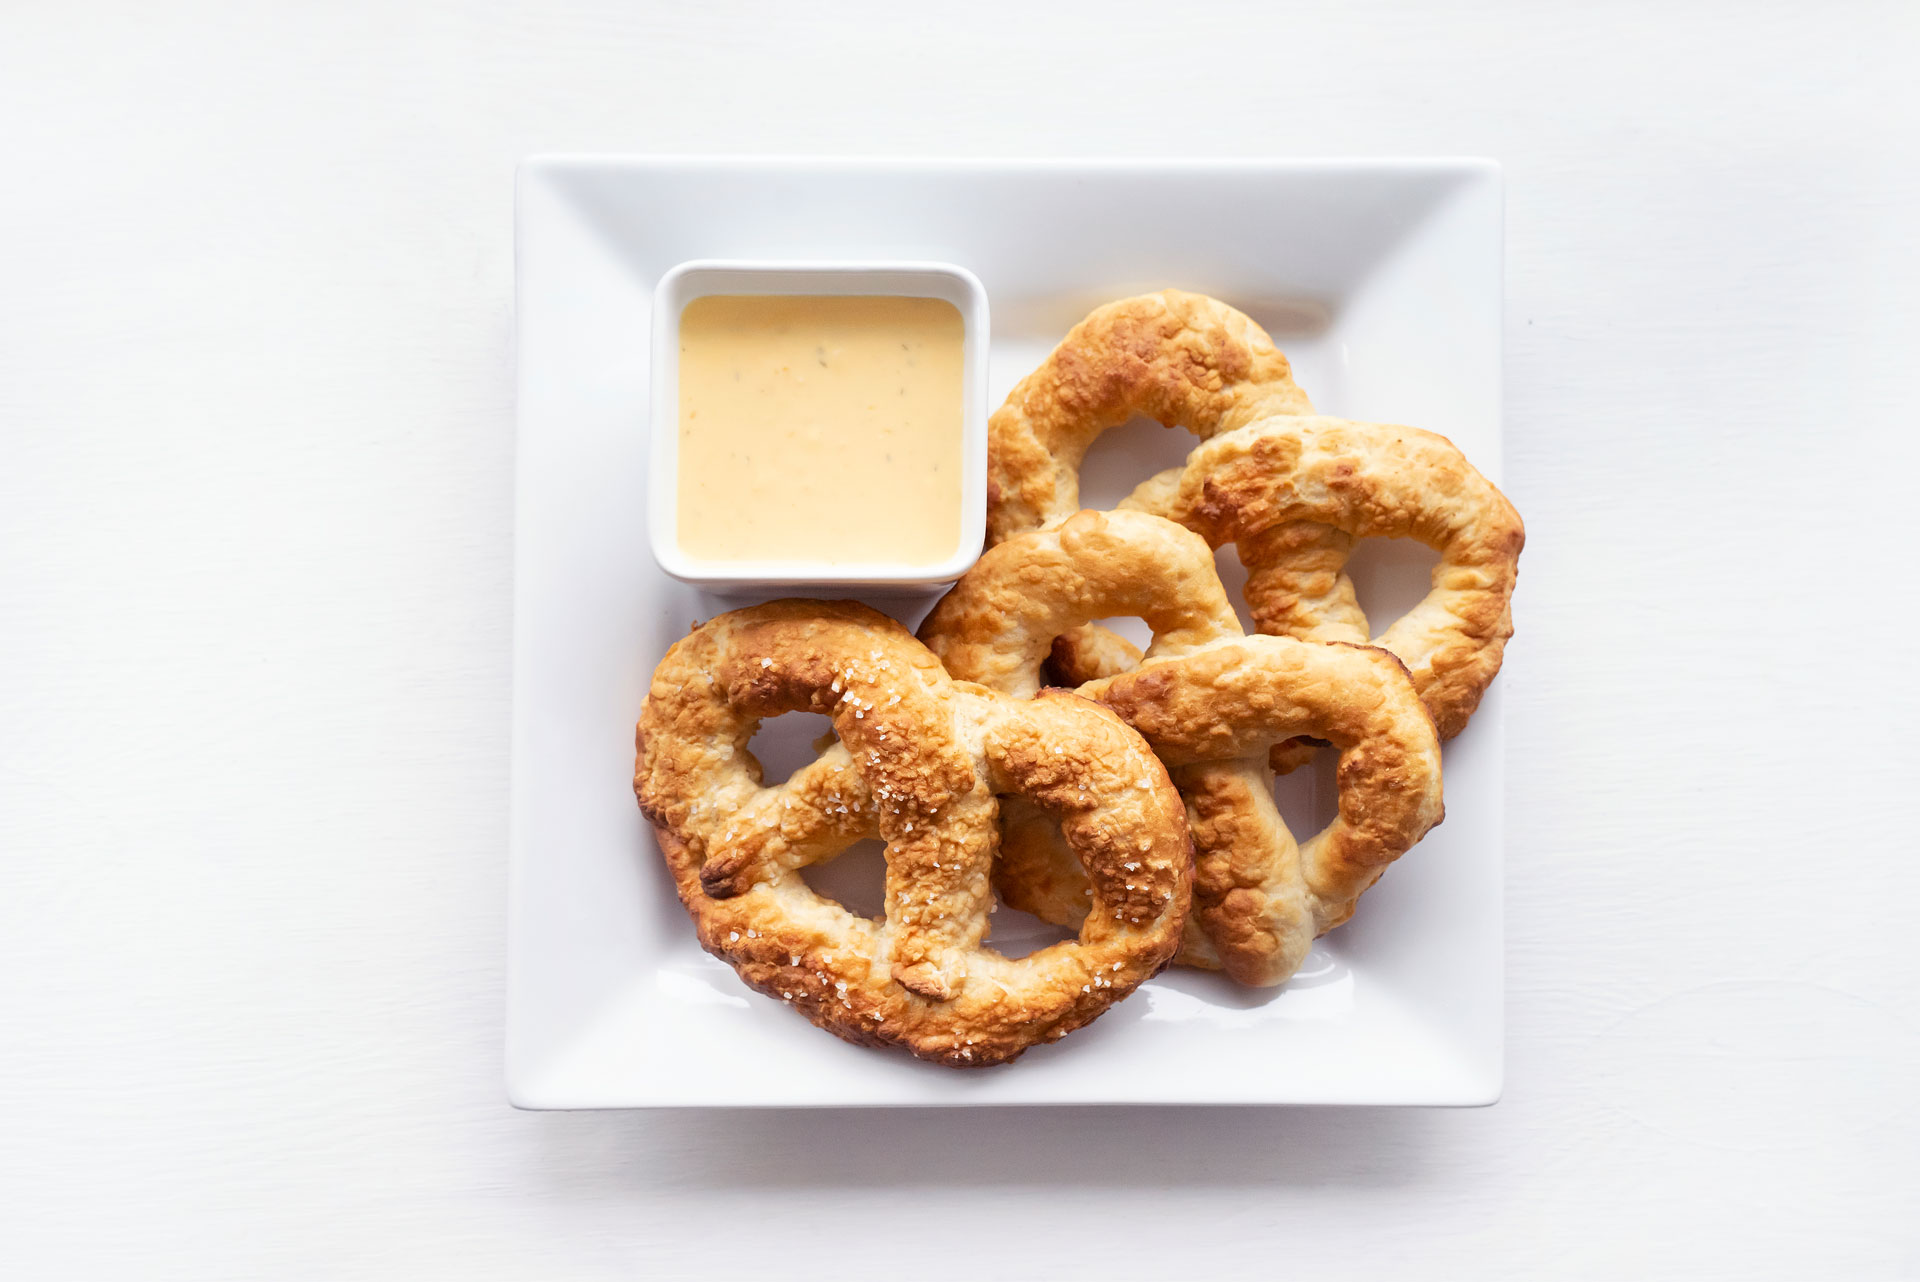 Soft Pretzels with a Cheese Sauce